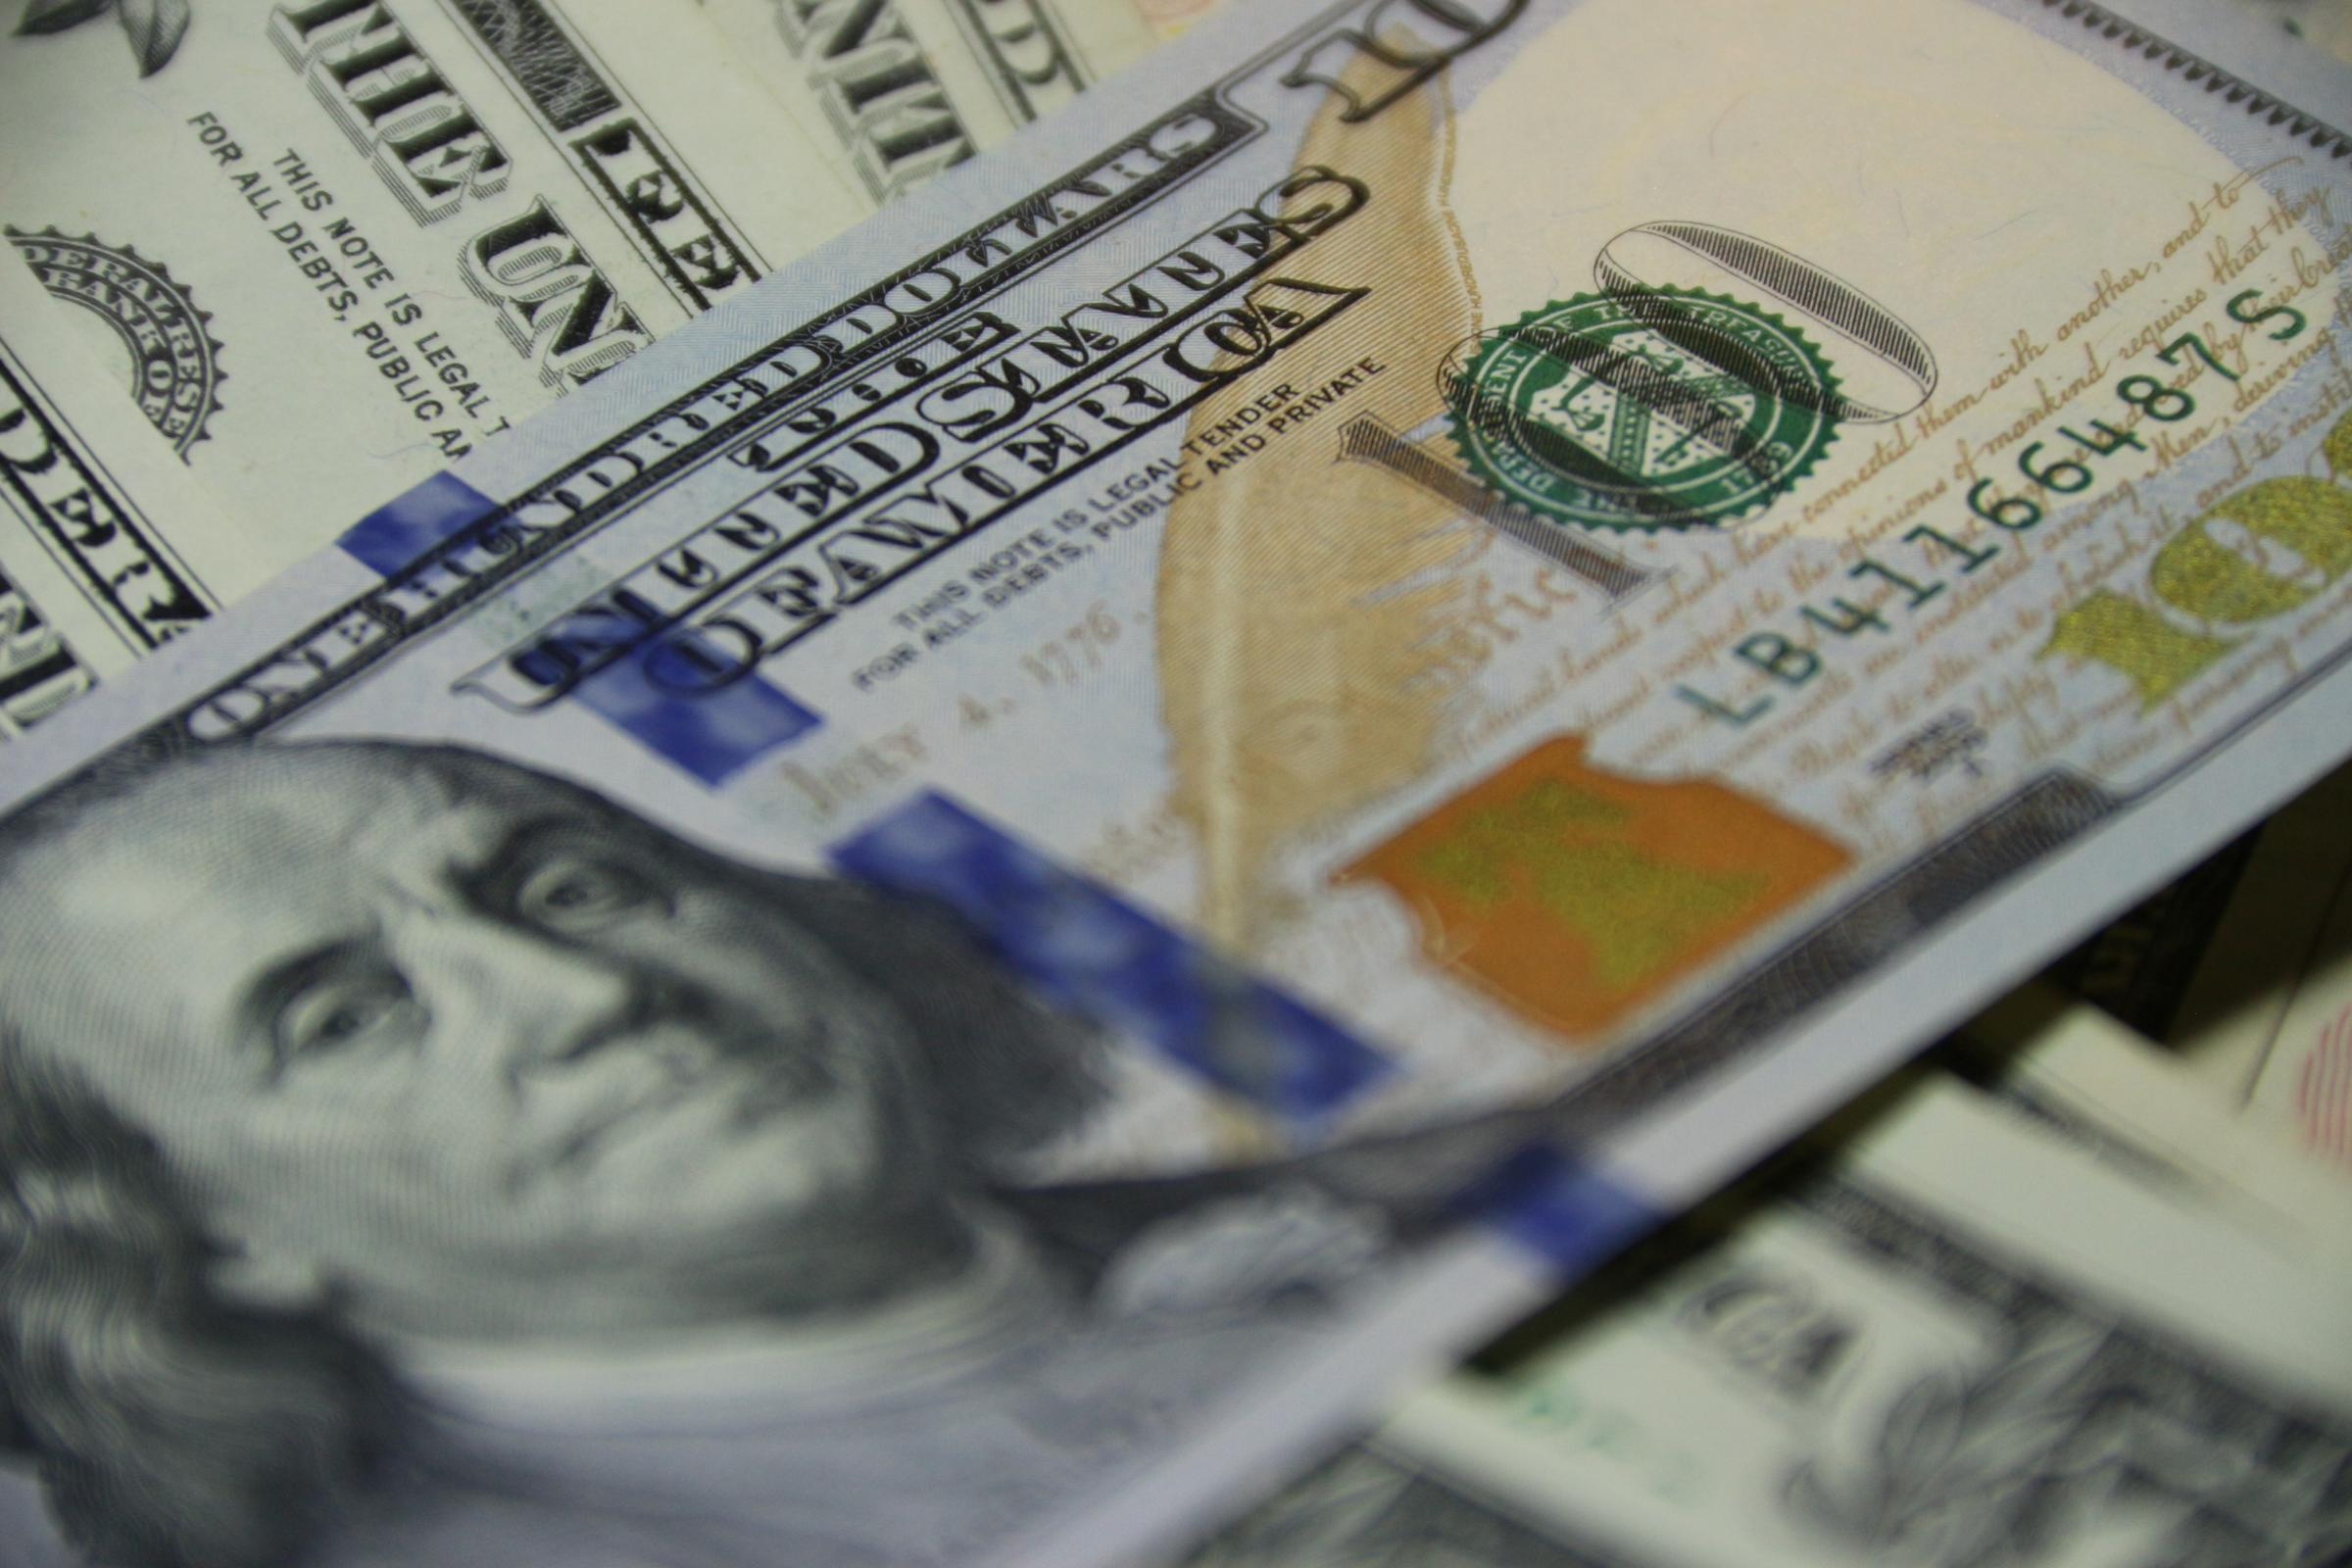 Installment payday loans in virginia photo 3